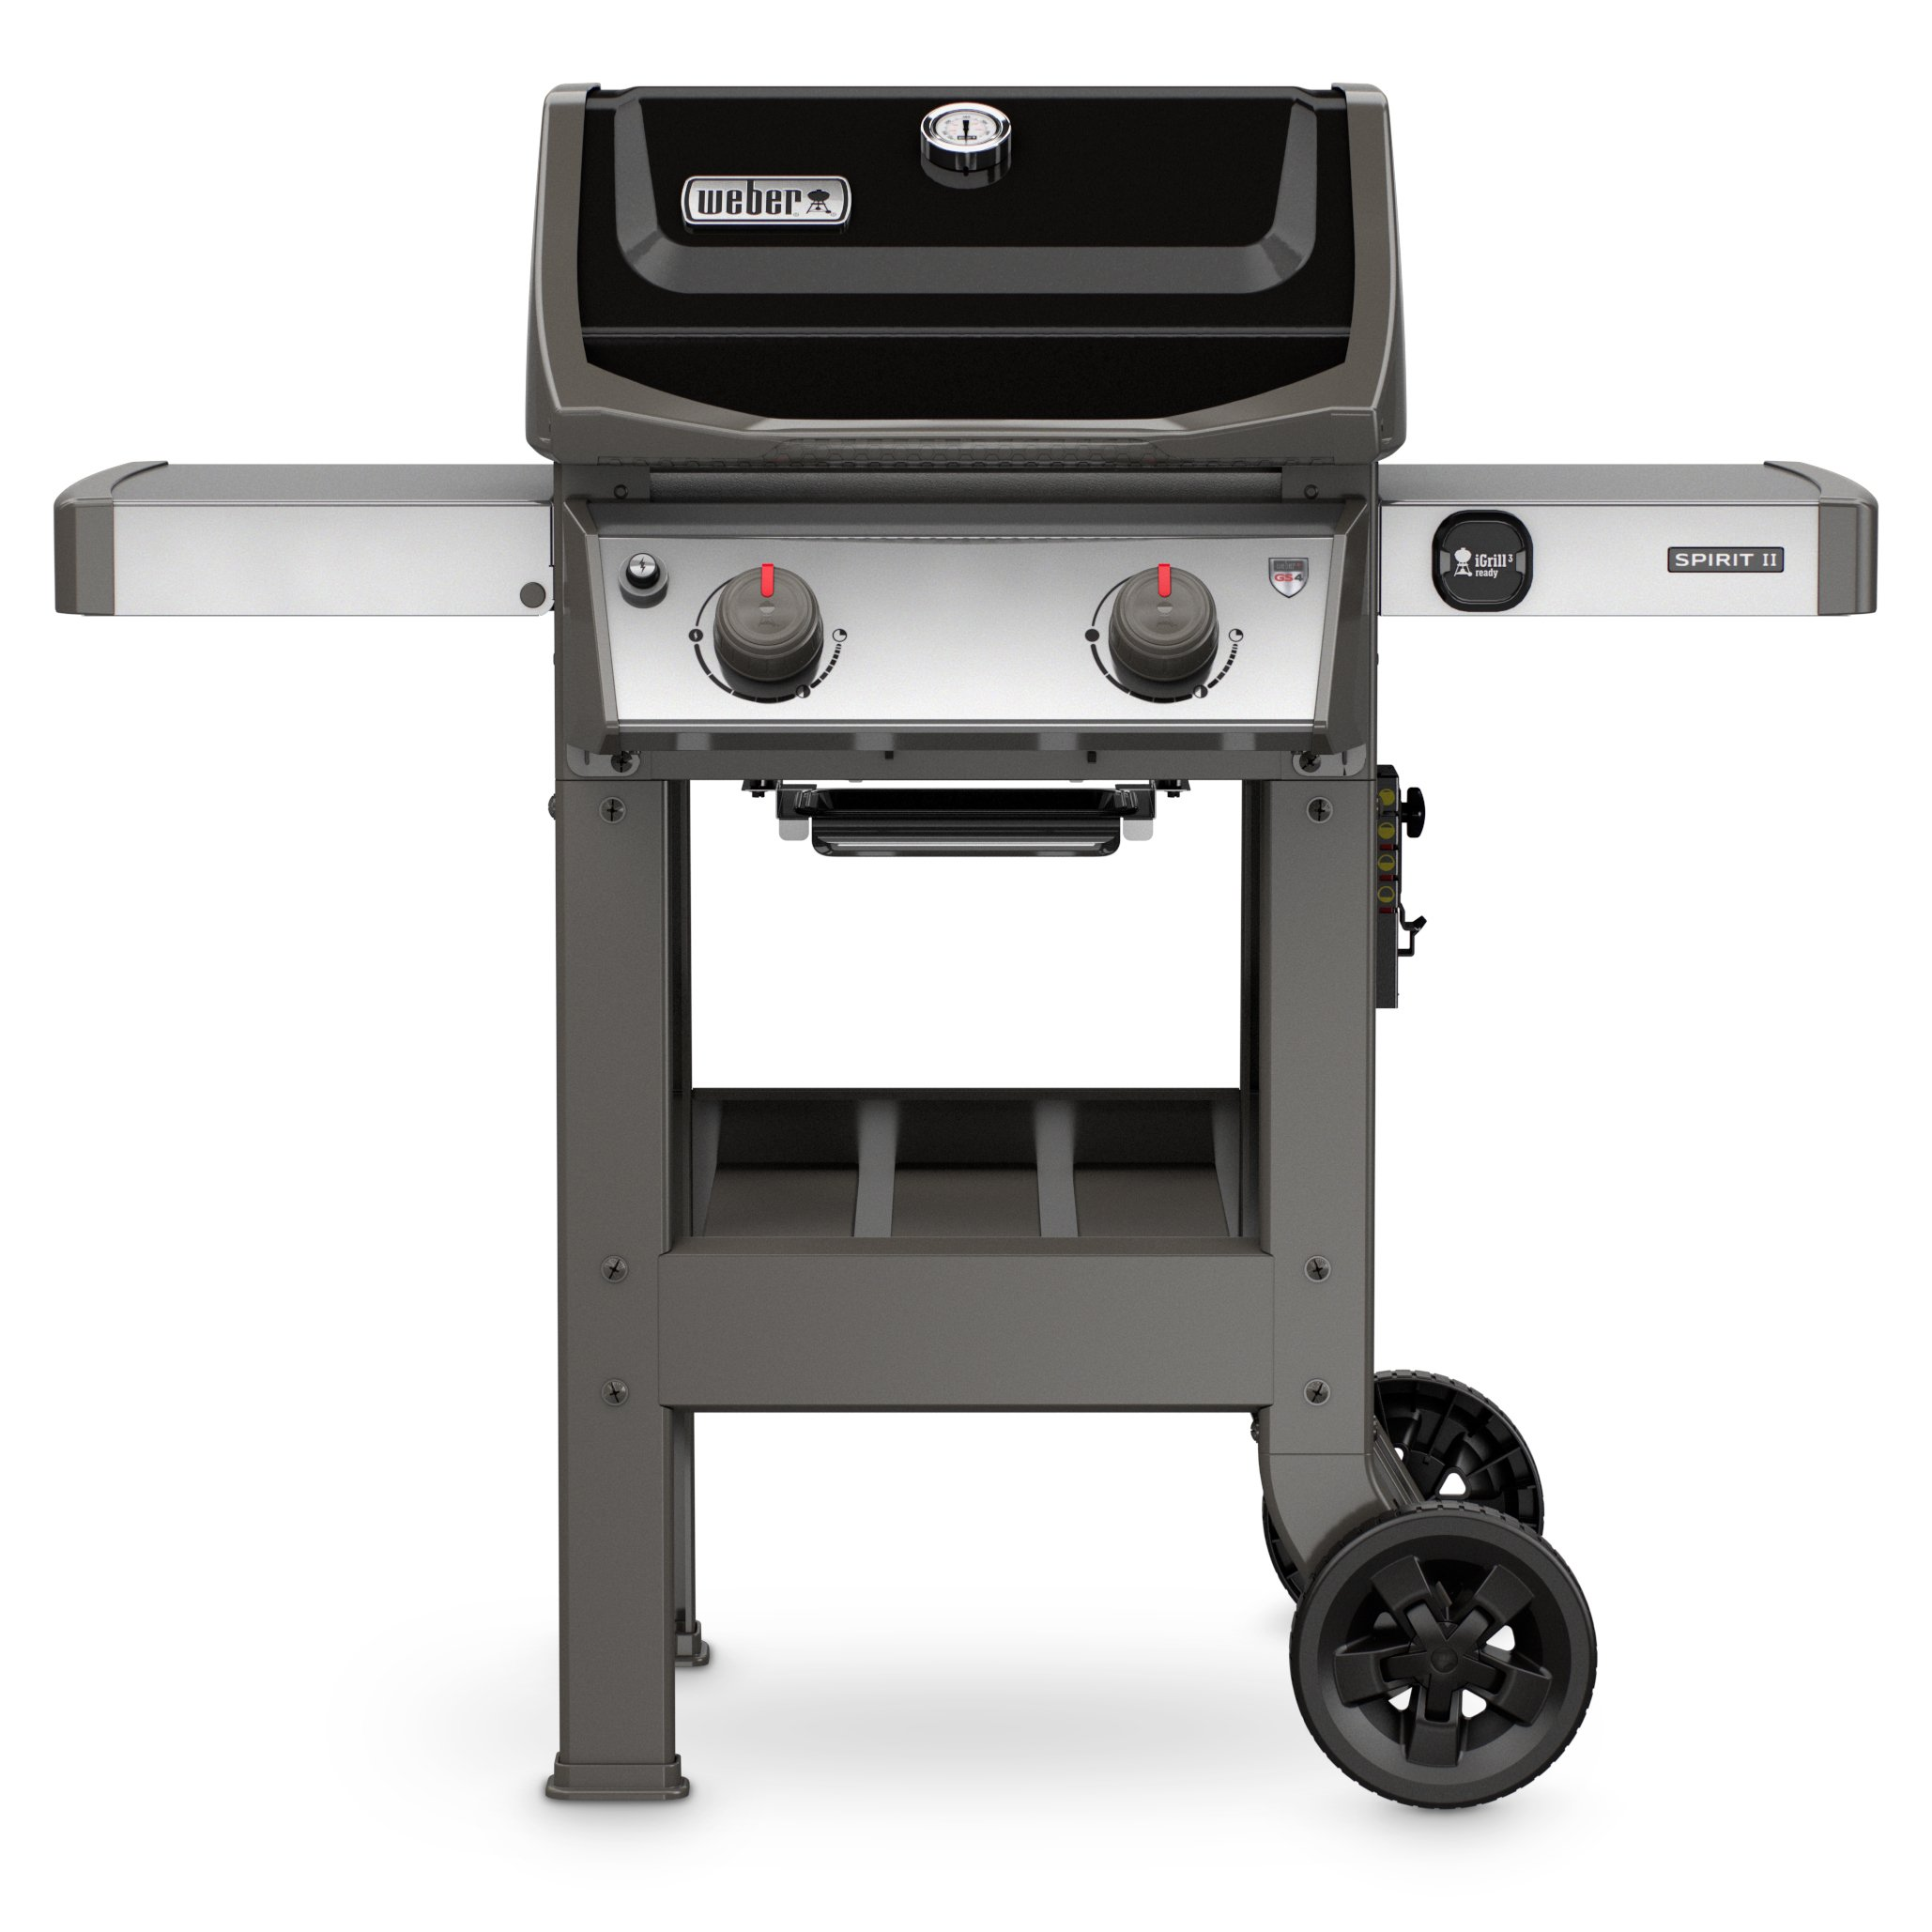 Weber 44010001 Spirit II E-210 2-Burner Liquid Propane Grill, Black by Weber